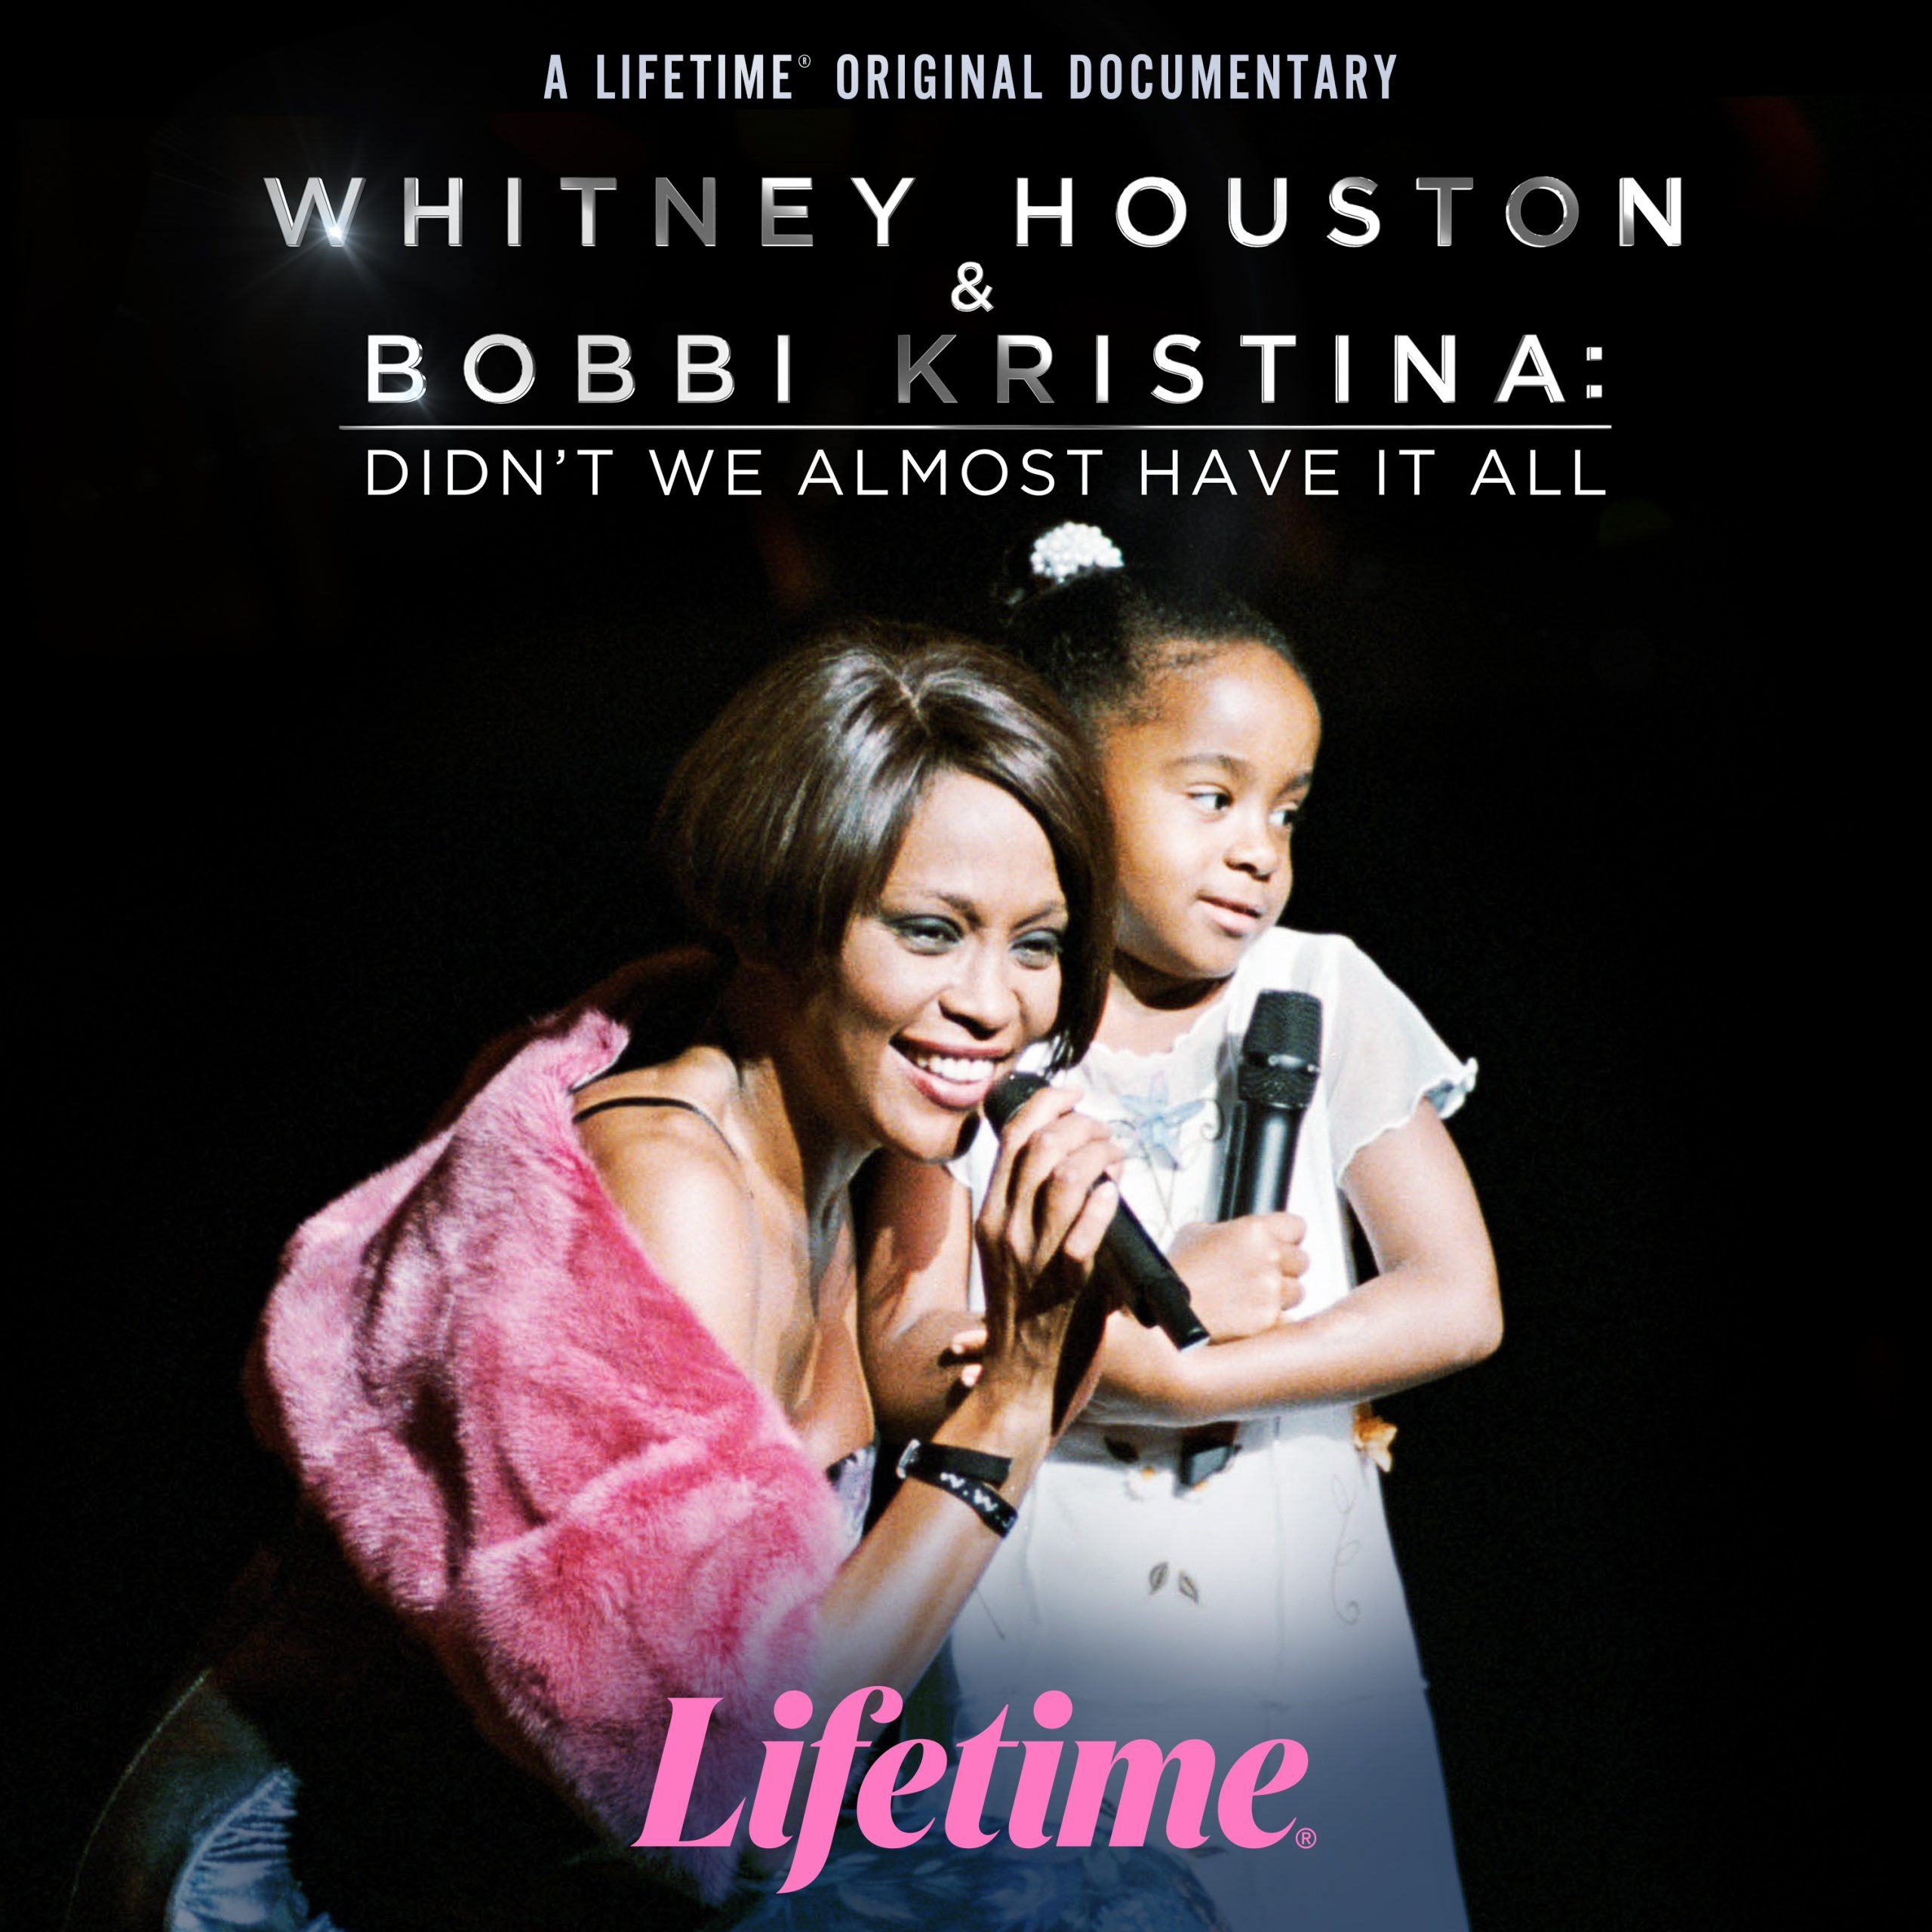 First Look: 'Whitney Houston & Bobbi Kristina: Didn't We Almost Have It All' on Lifetime